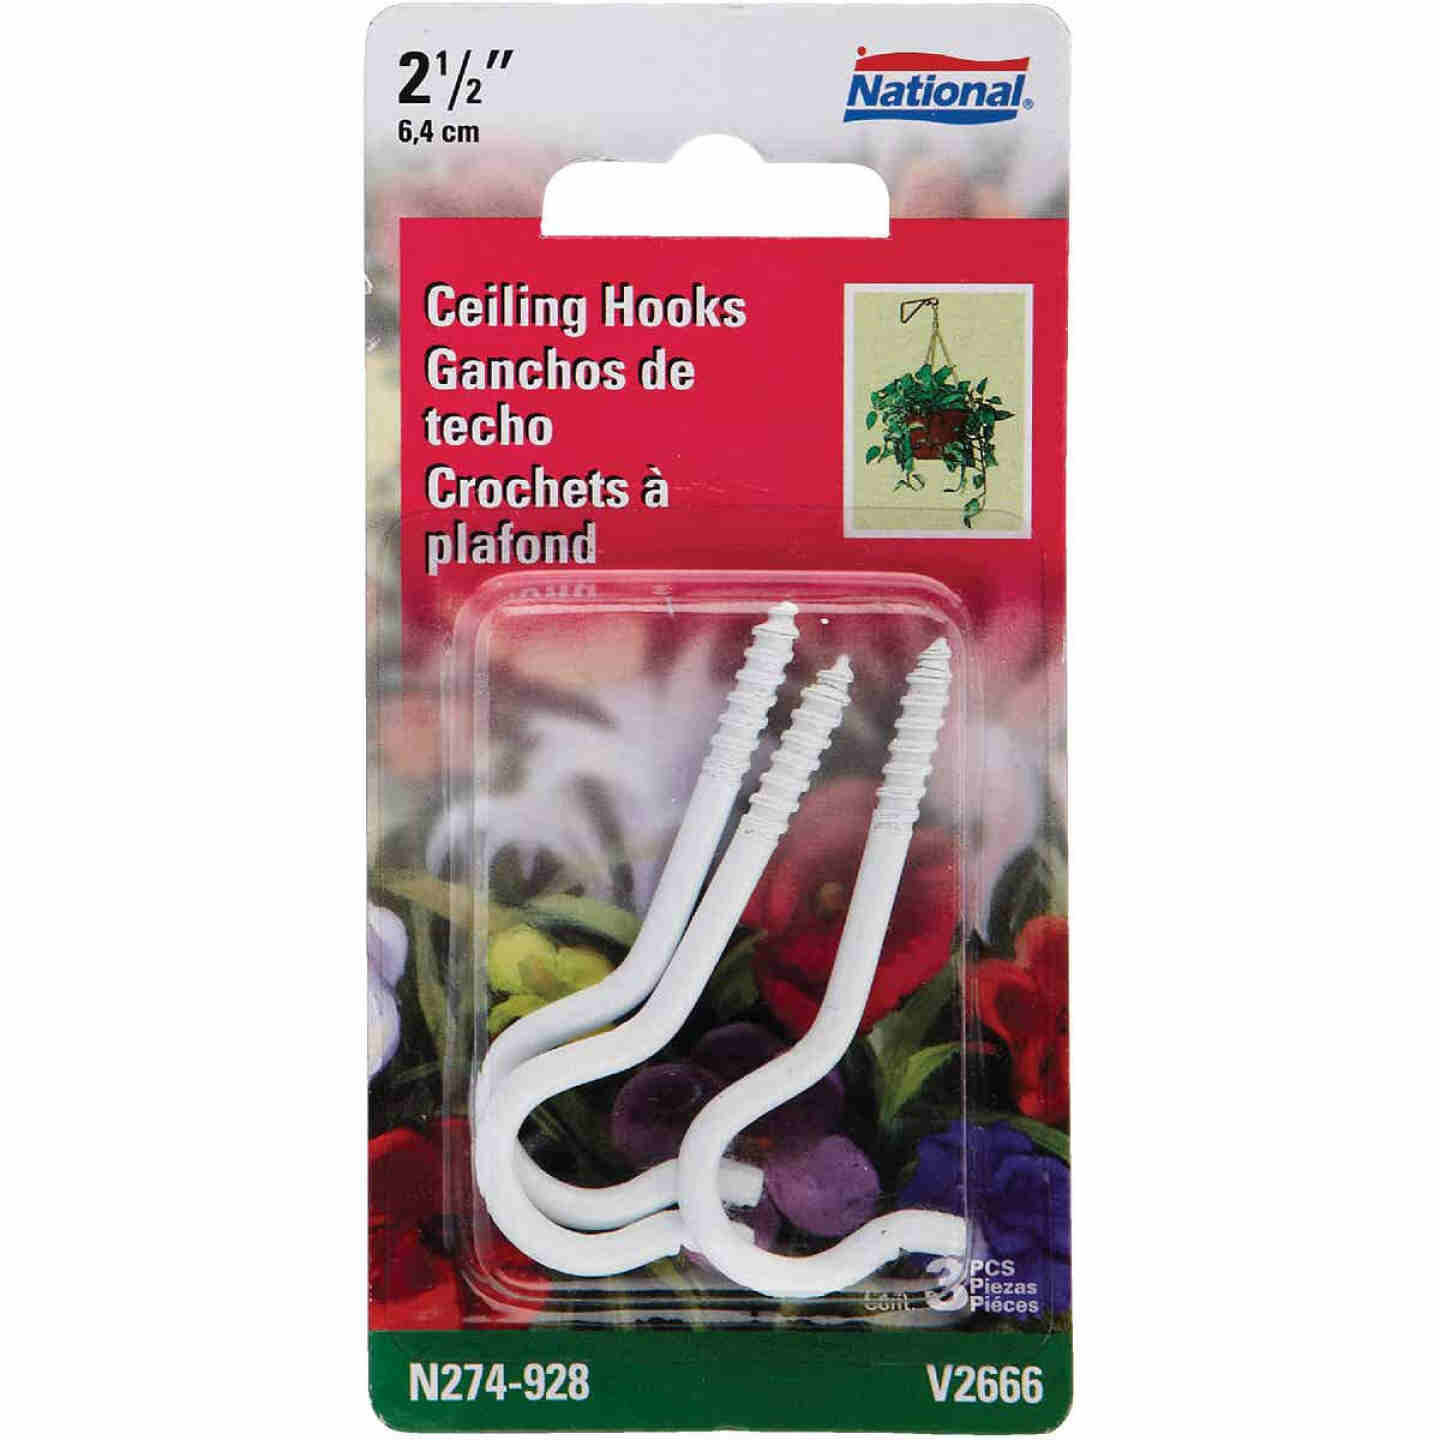 National 2-1/2 In. White Ceiling Hook (3 Pack) Image 1